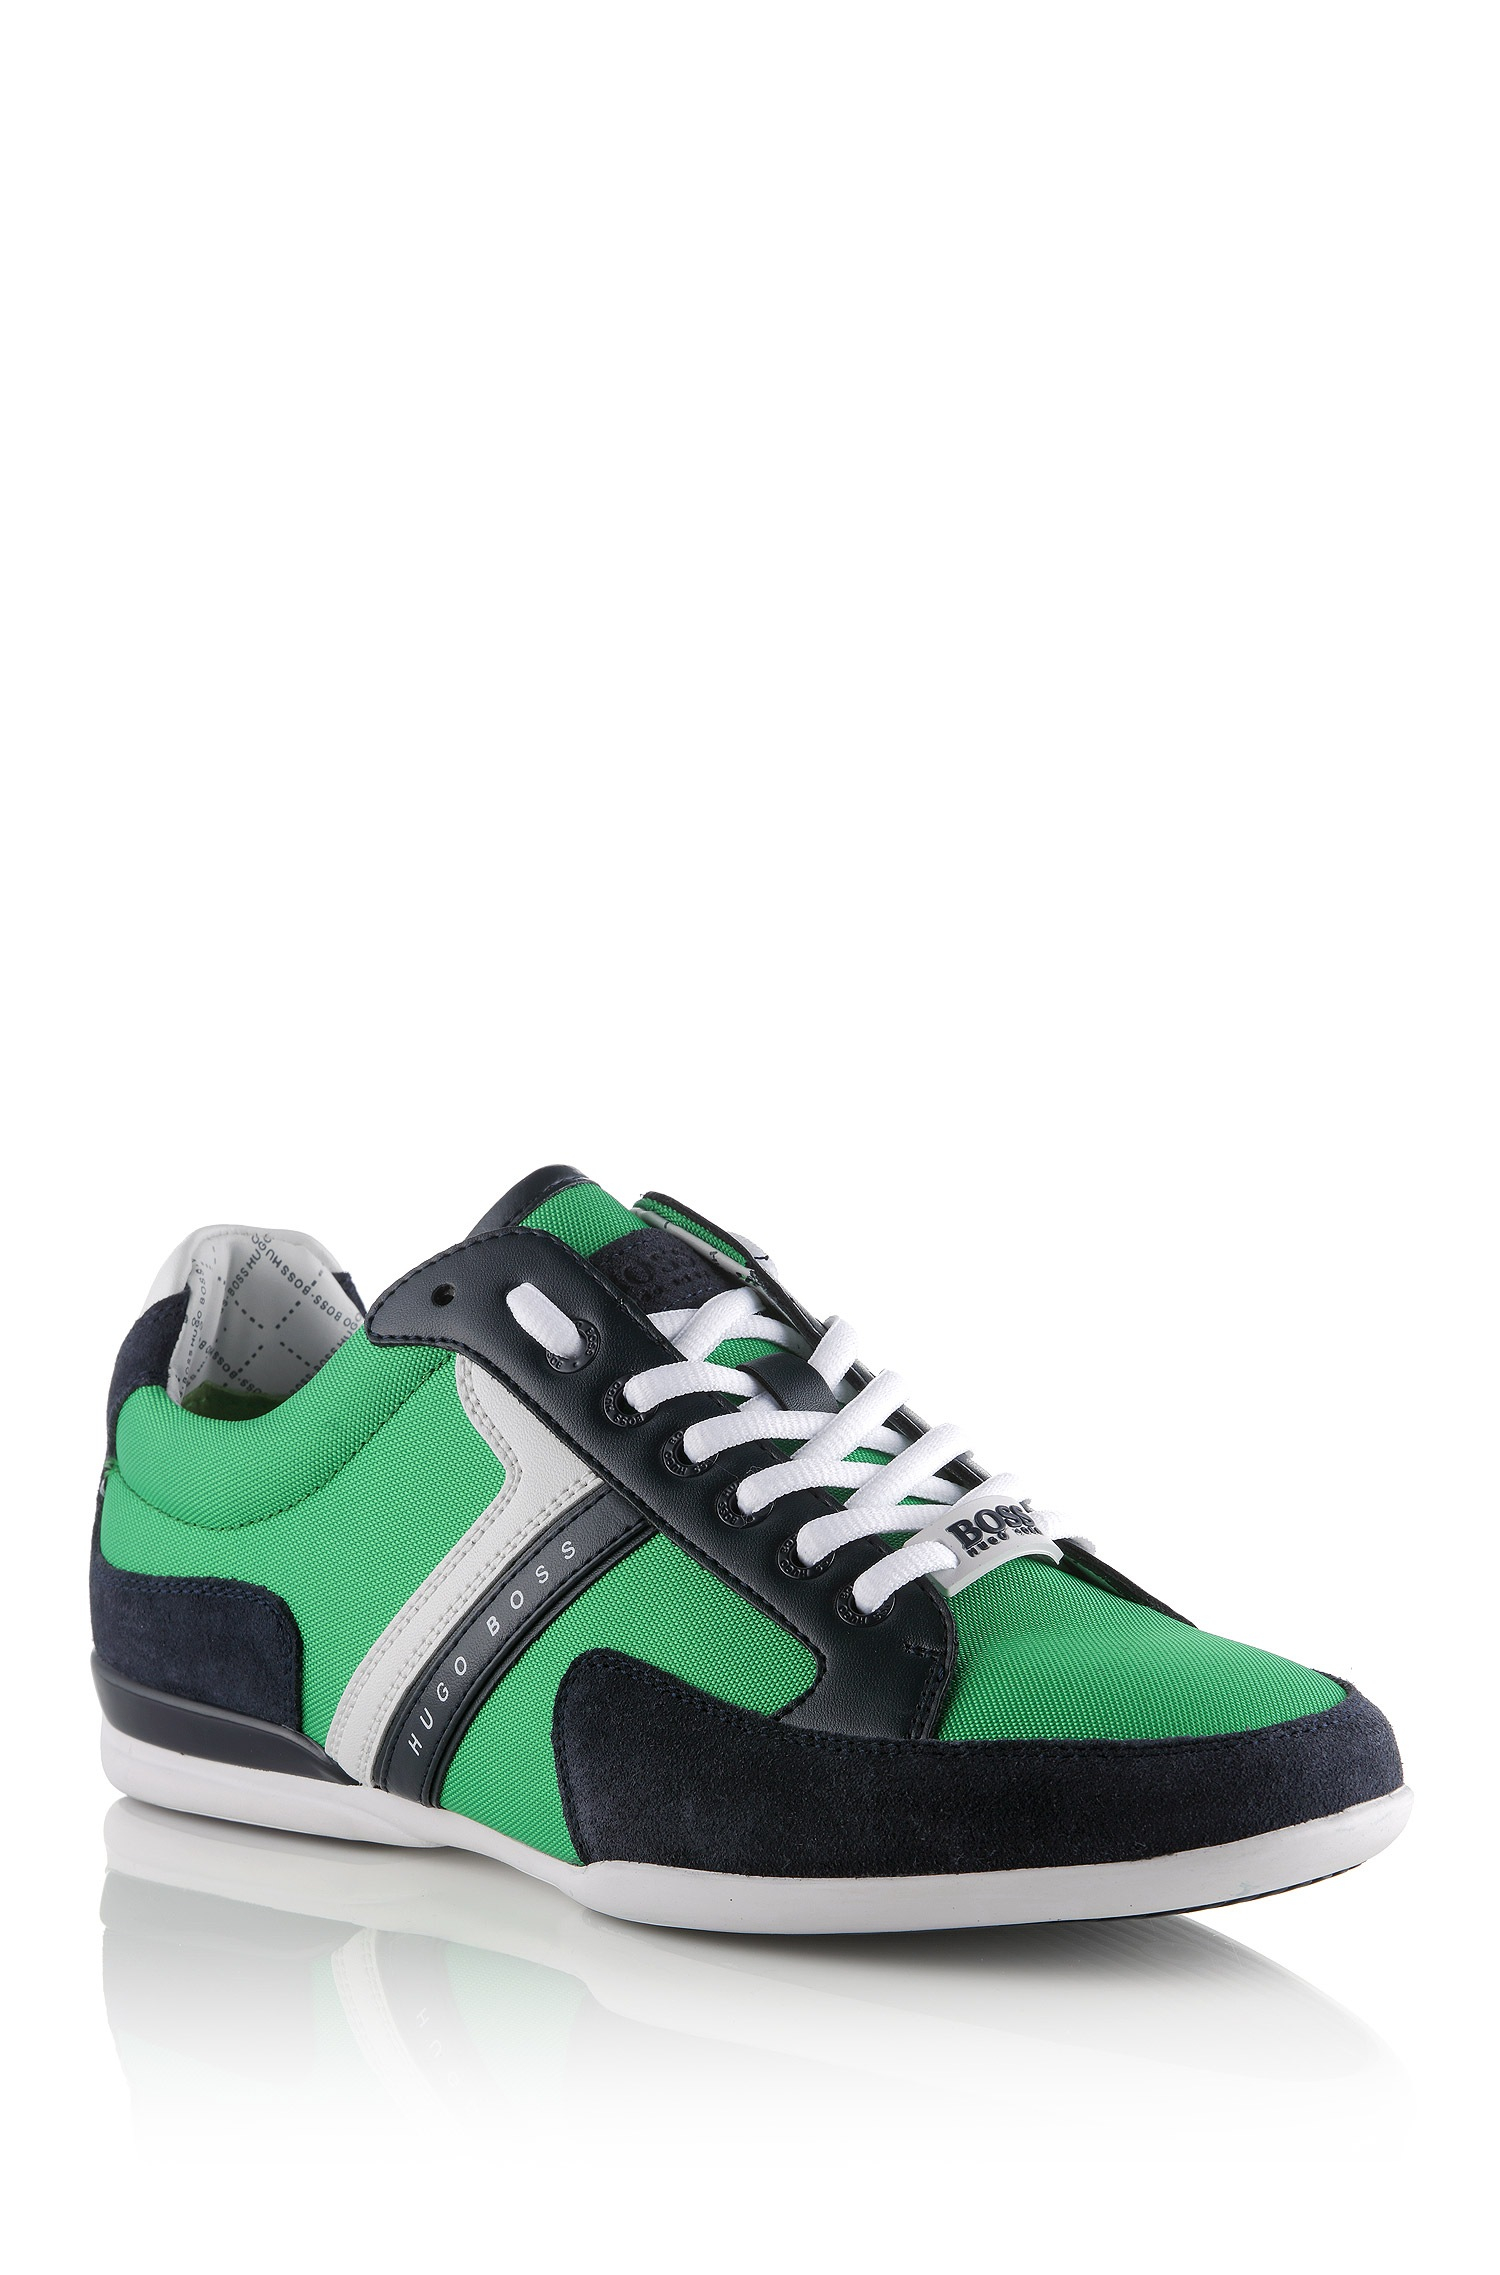 boss green spacit leather and suede sneakers in green for men lyst. Black Bedroom Furniture Sets. Home Design Ideas